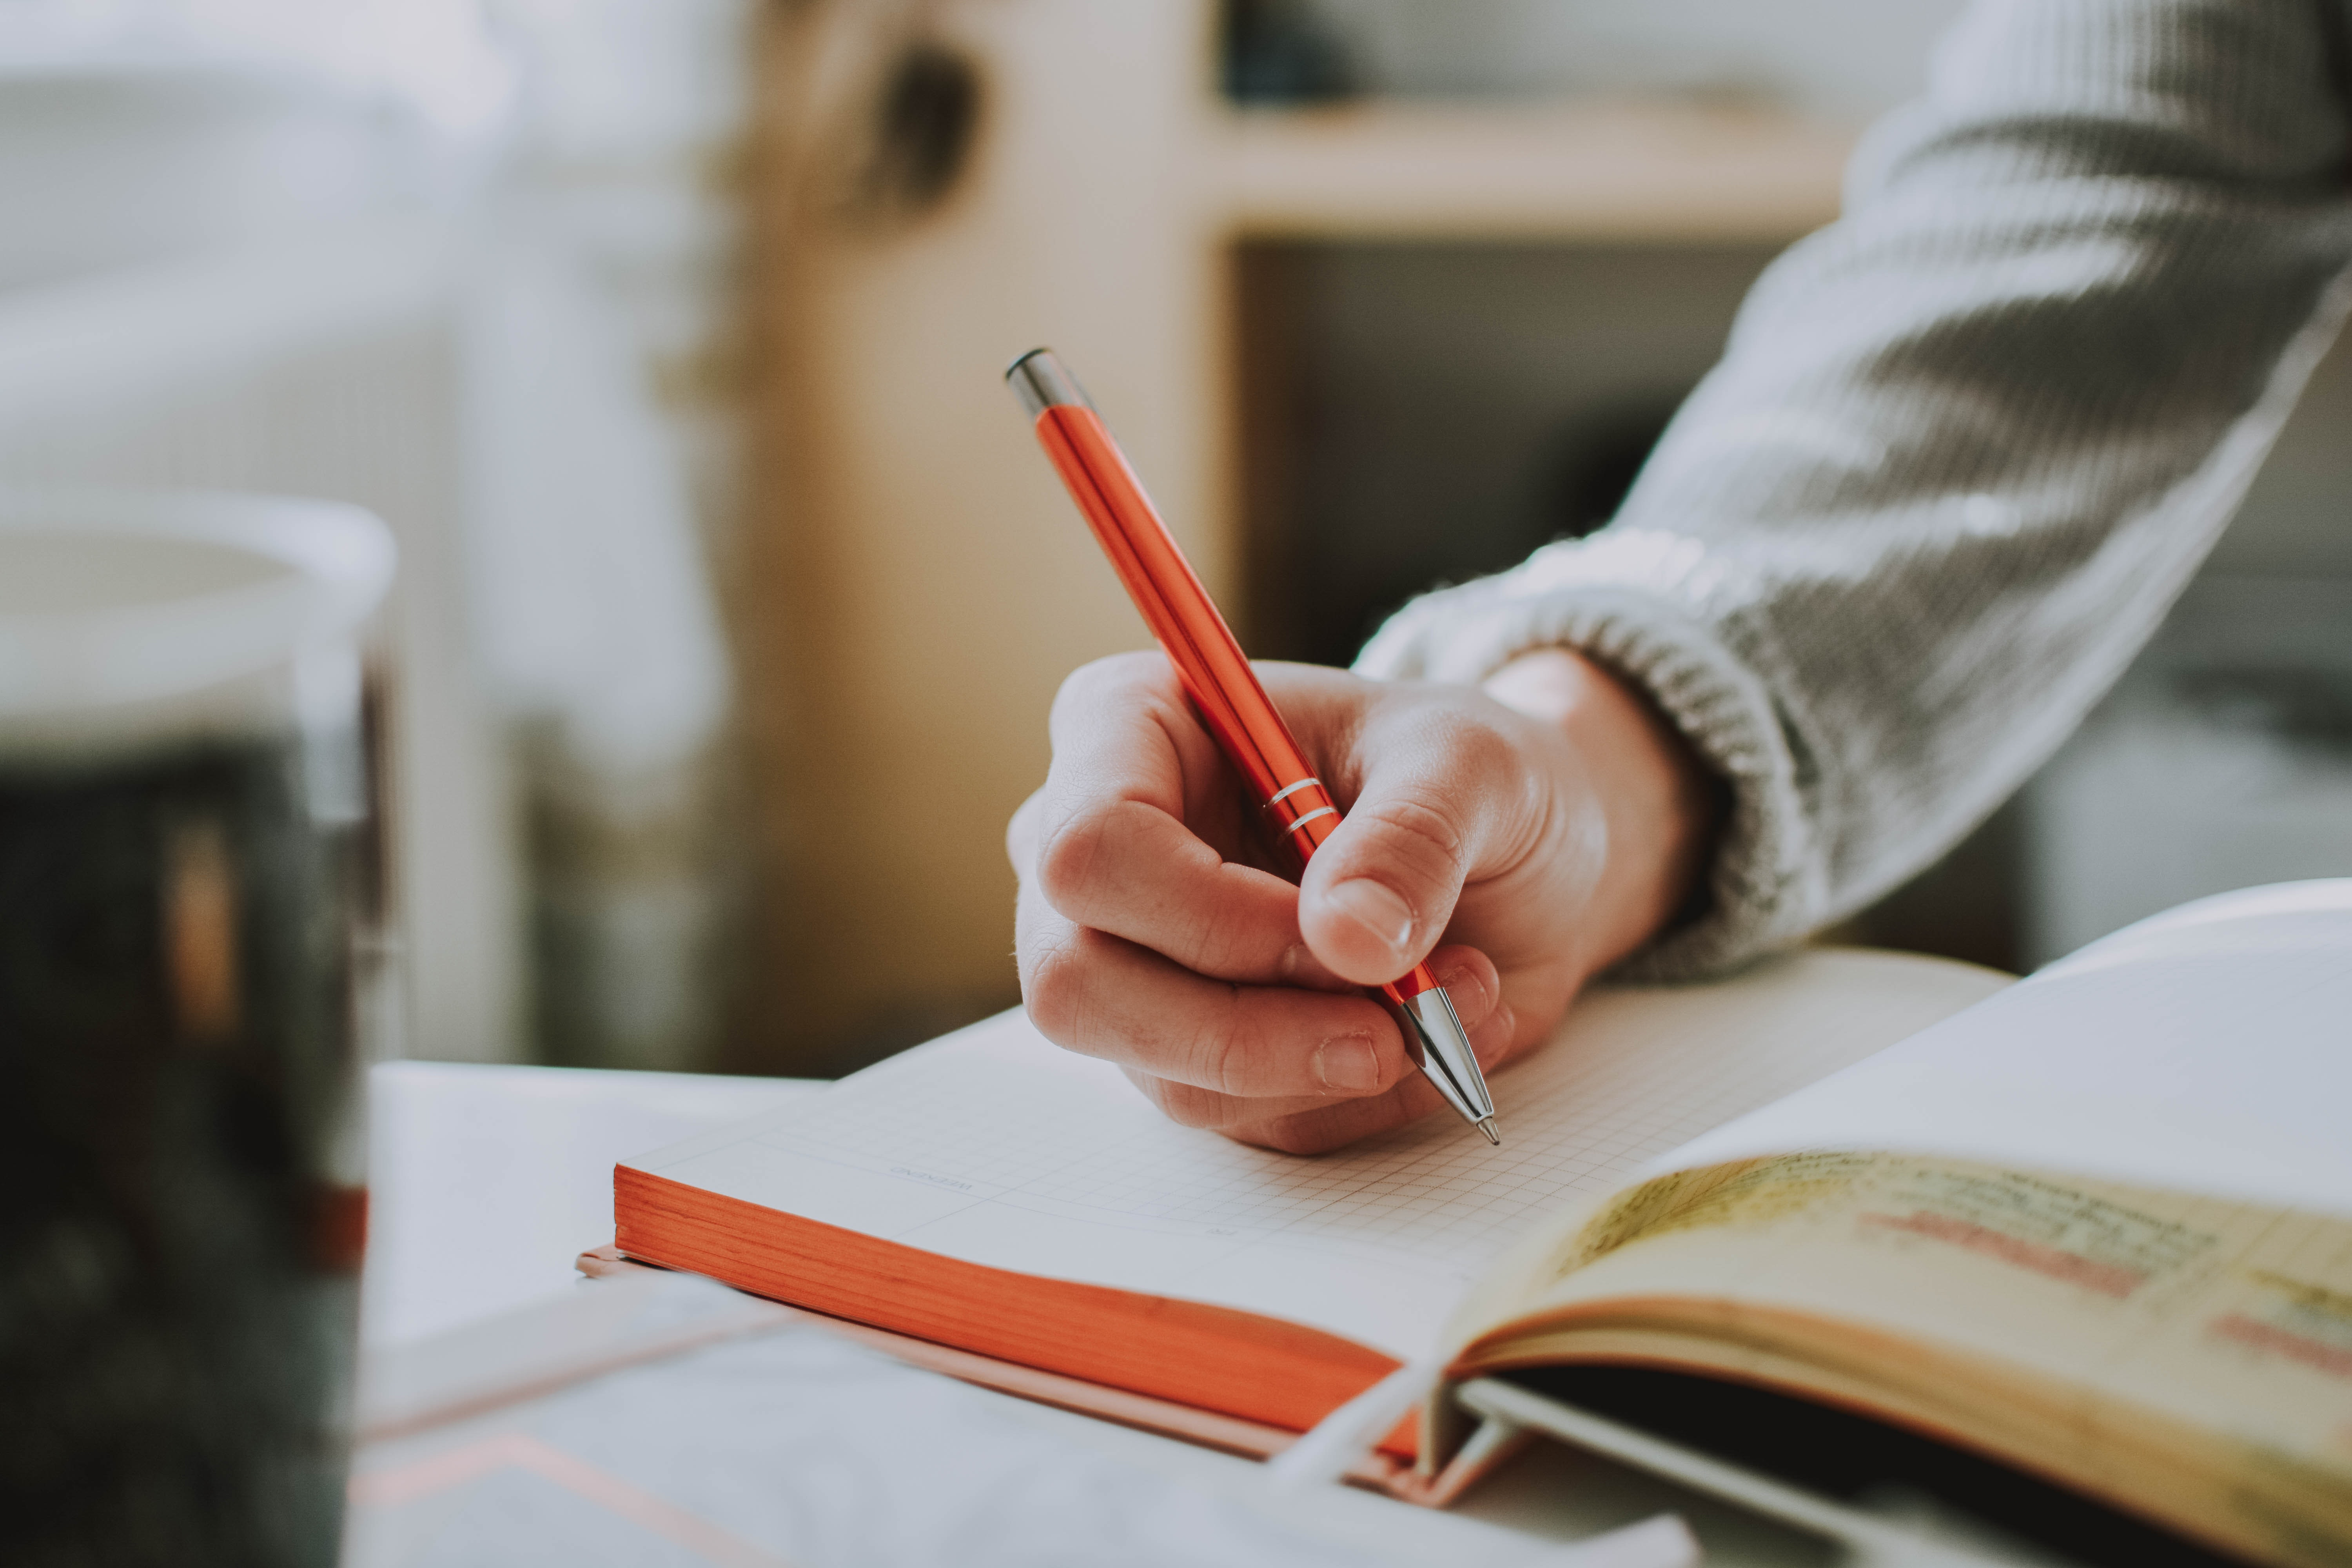 Hand writing in a notebook.